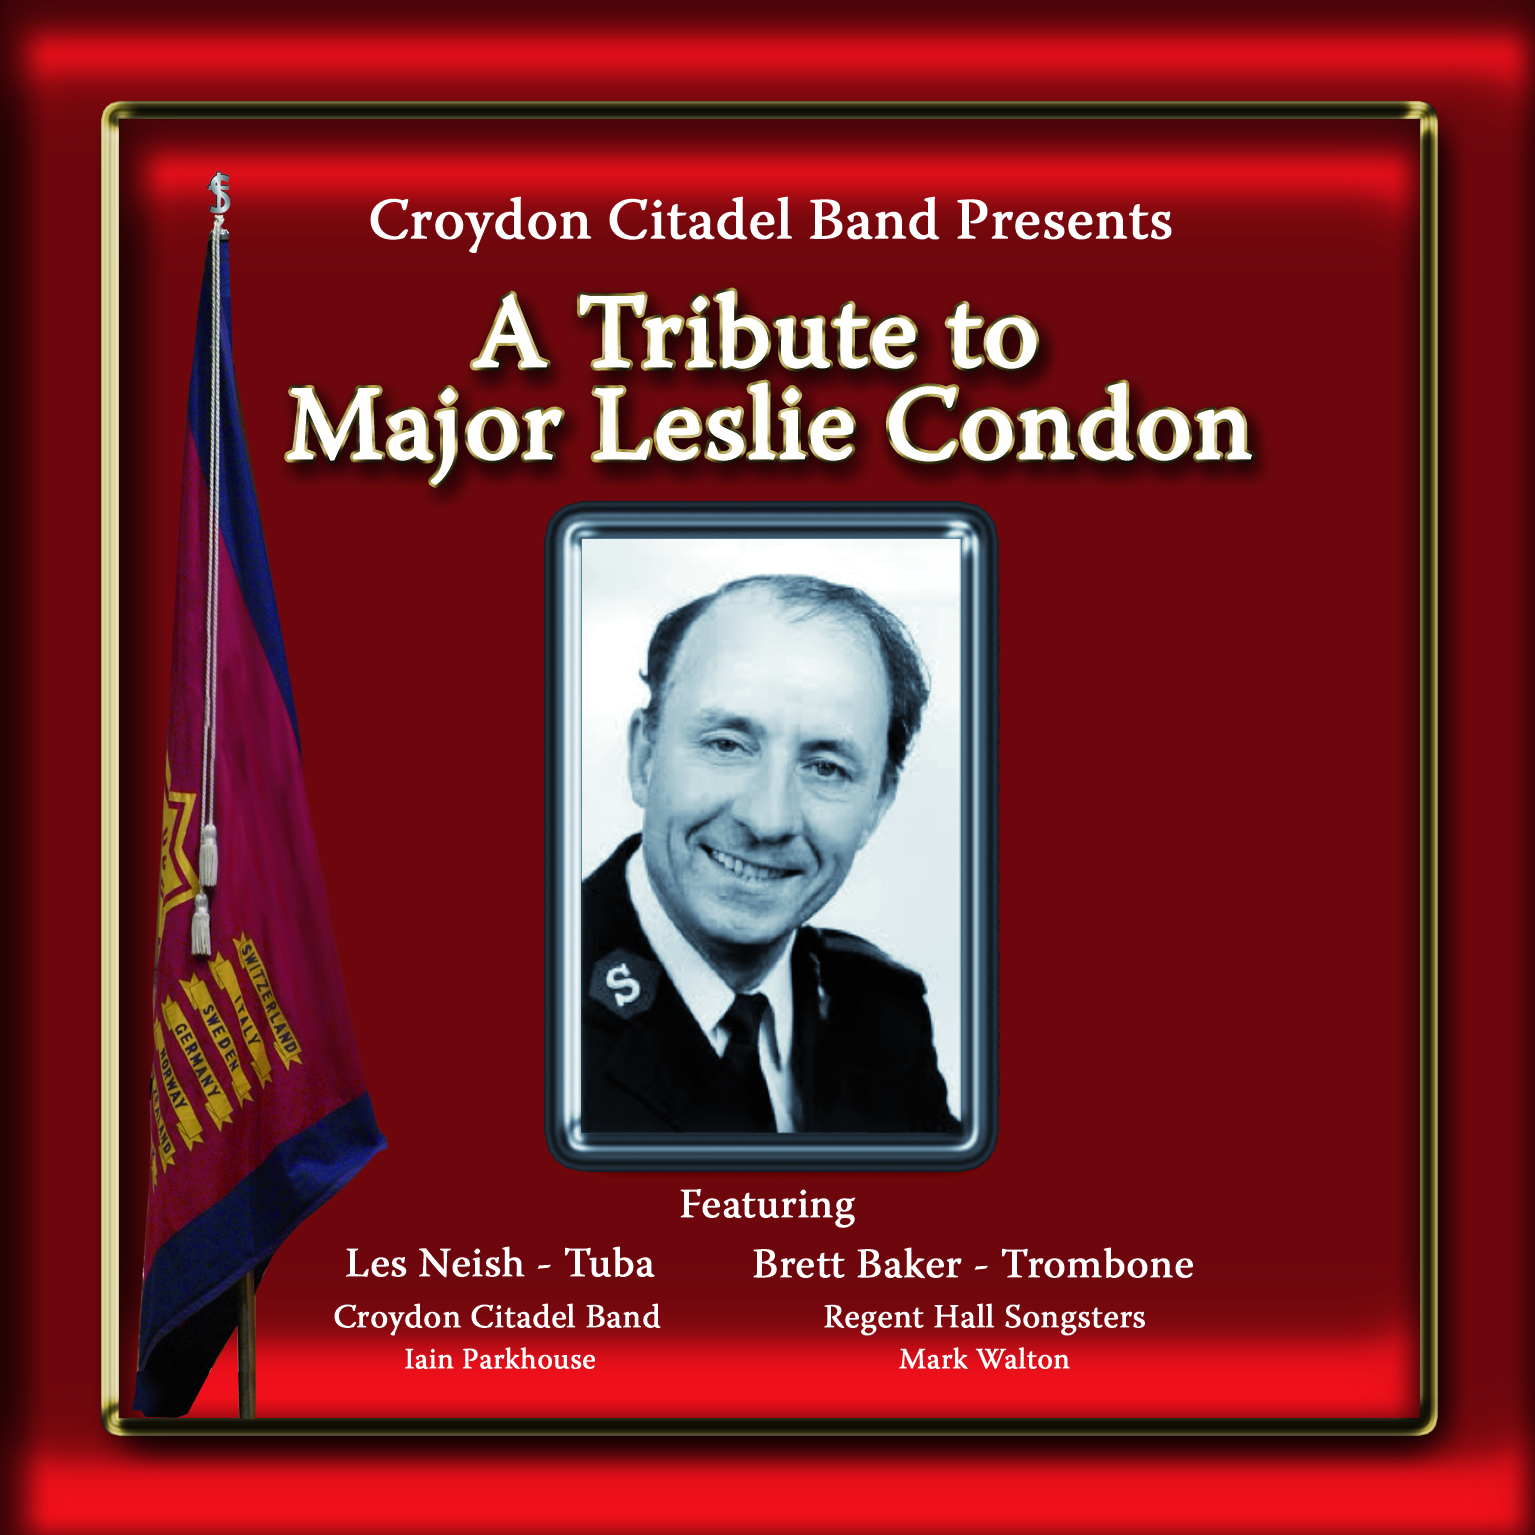 A Tribute to Major Leslie Condon - Download